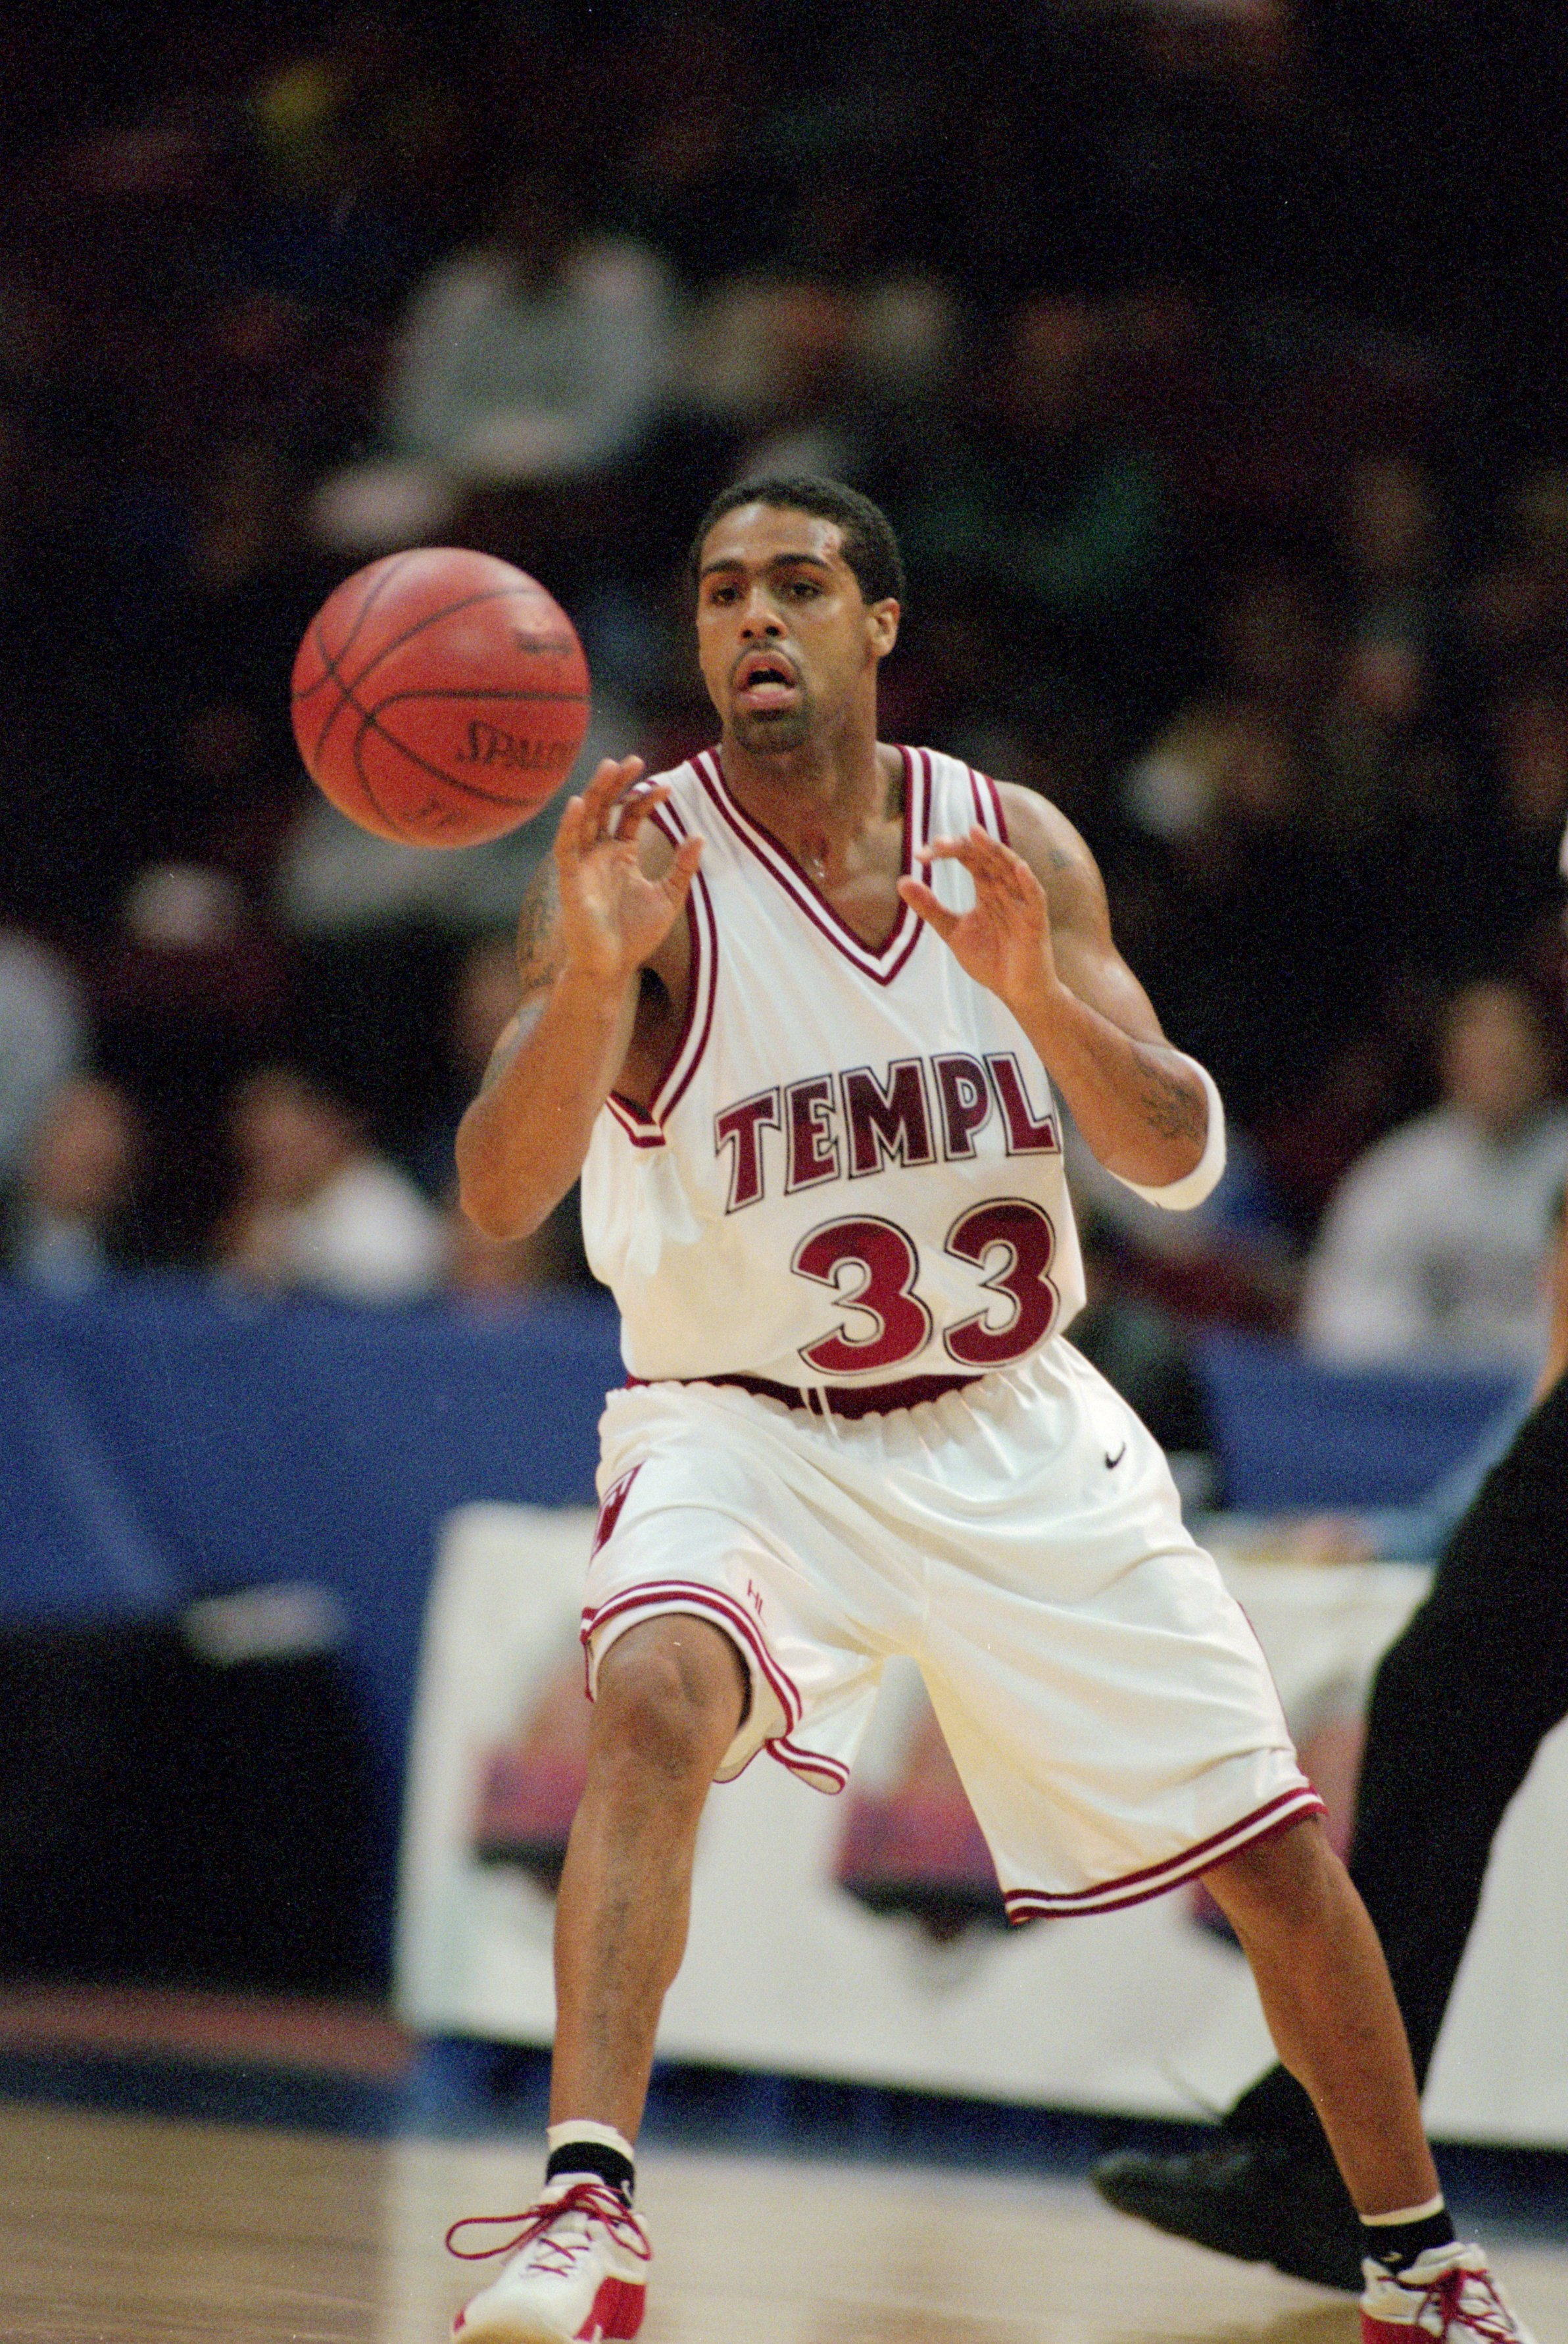 9 Mar 2001:  Quincy Wadley #33 of the Temple Owls moves to catch the ball during the game against the George Washington Colonials at The Spectrum in Philadelphia, Pennsylvania. The Owls defeated the Colonials 77-76.Mandatory Credit: Al Bello  /Allsport